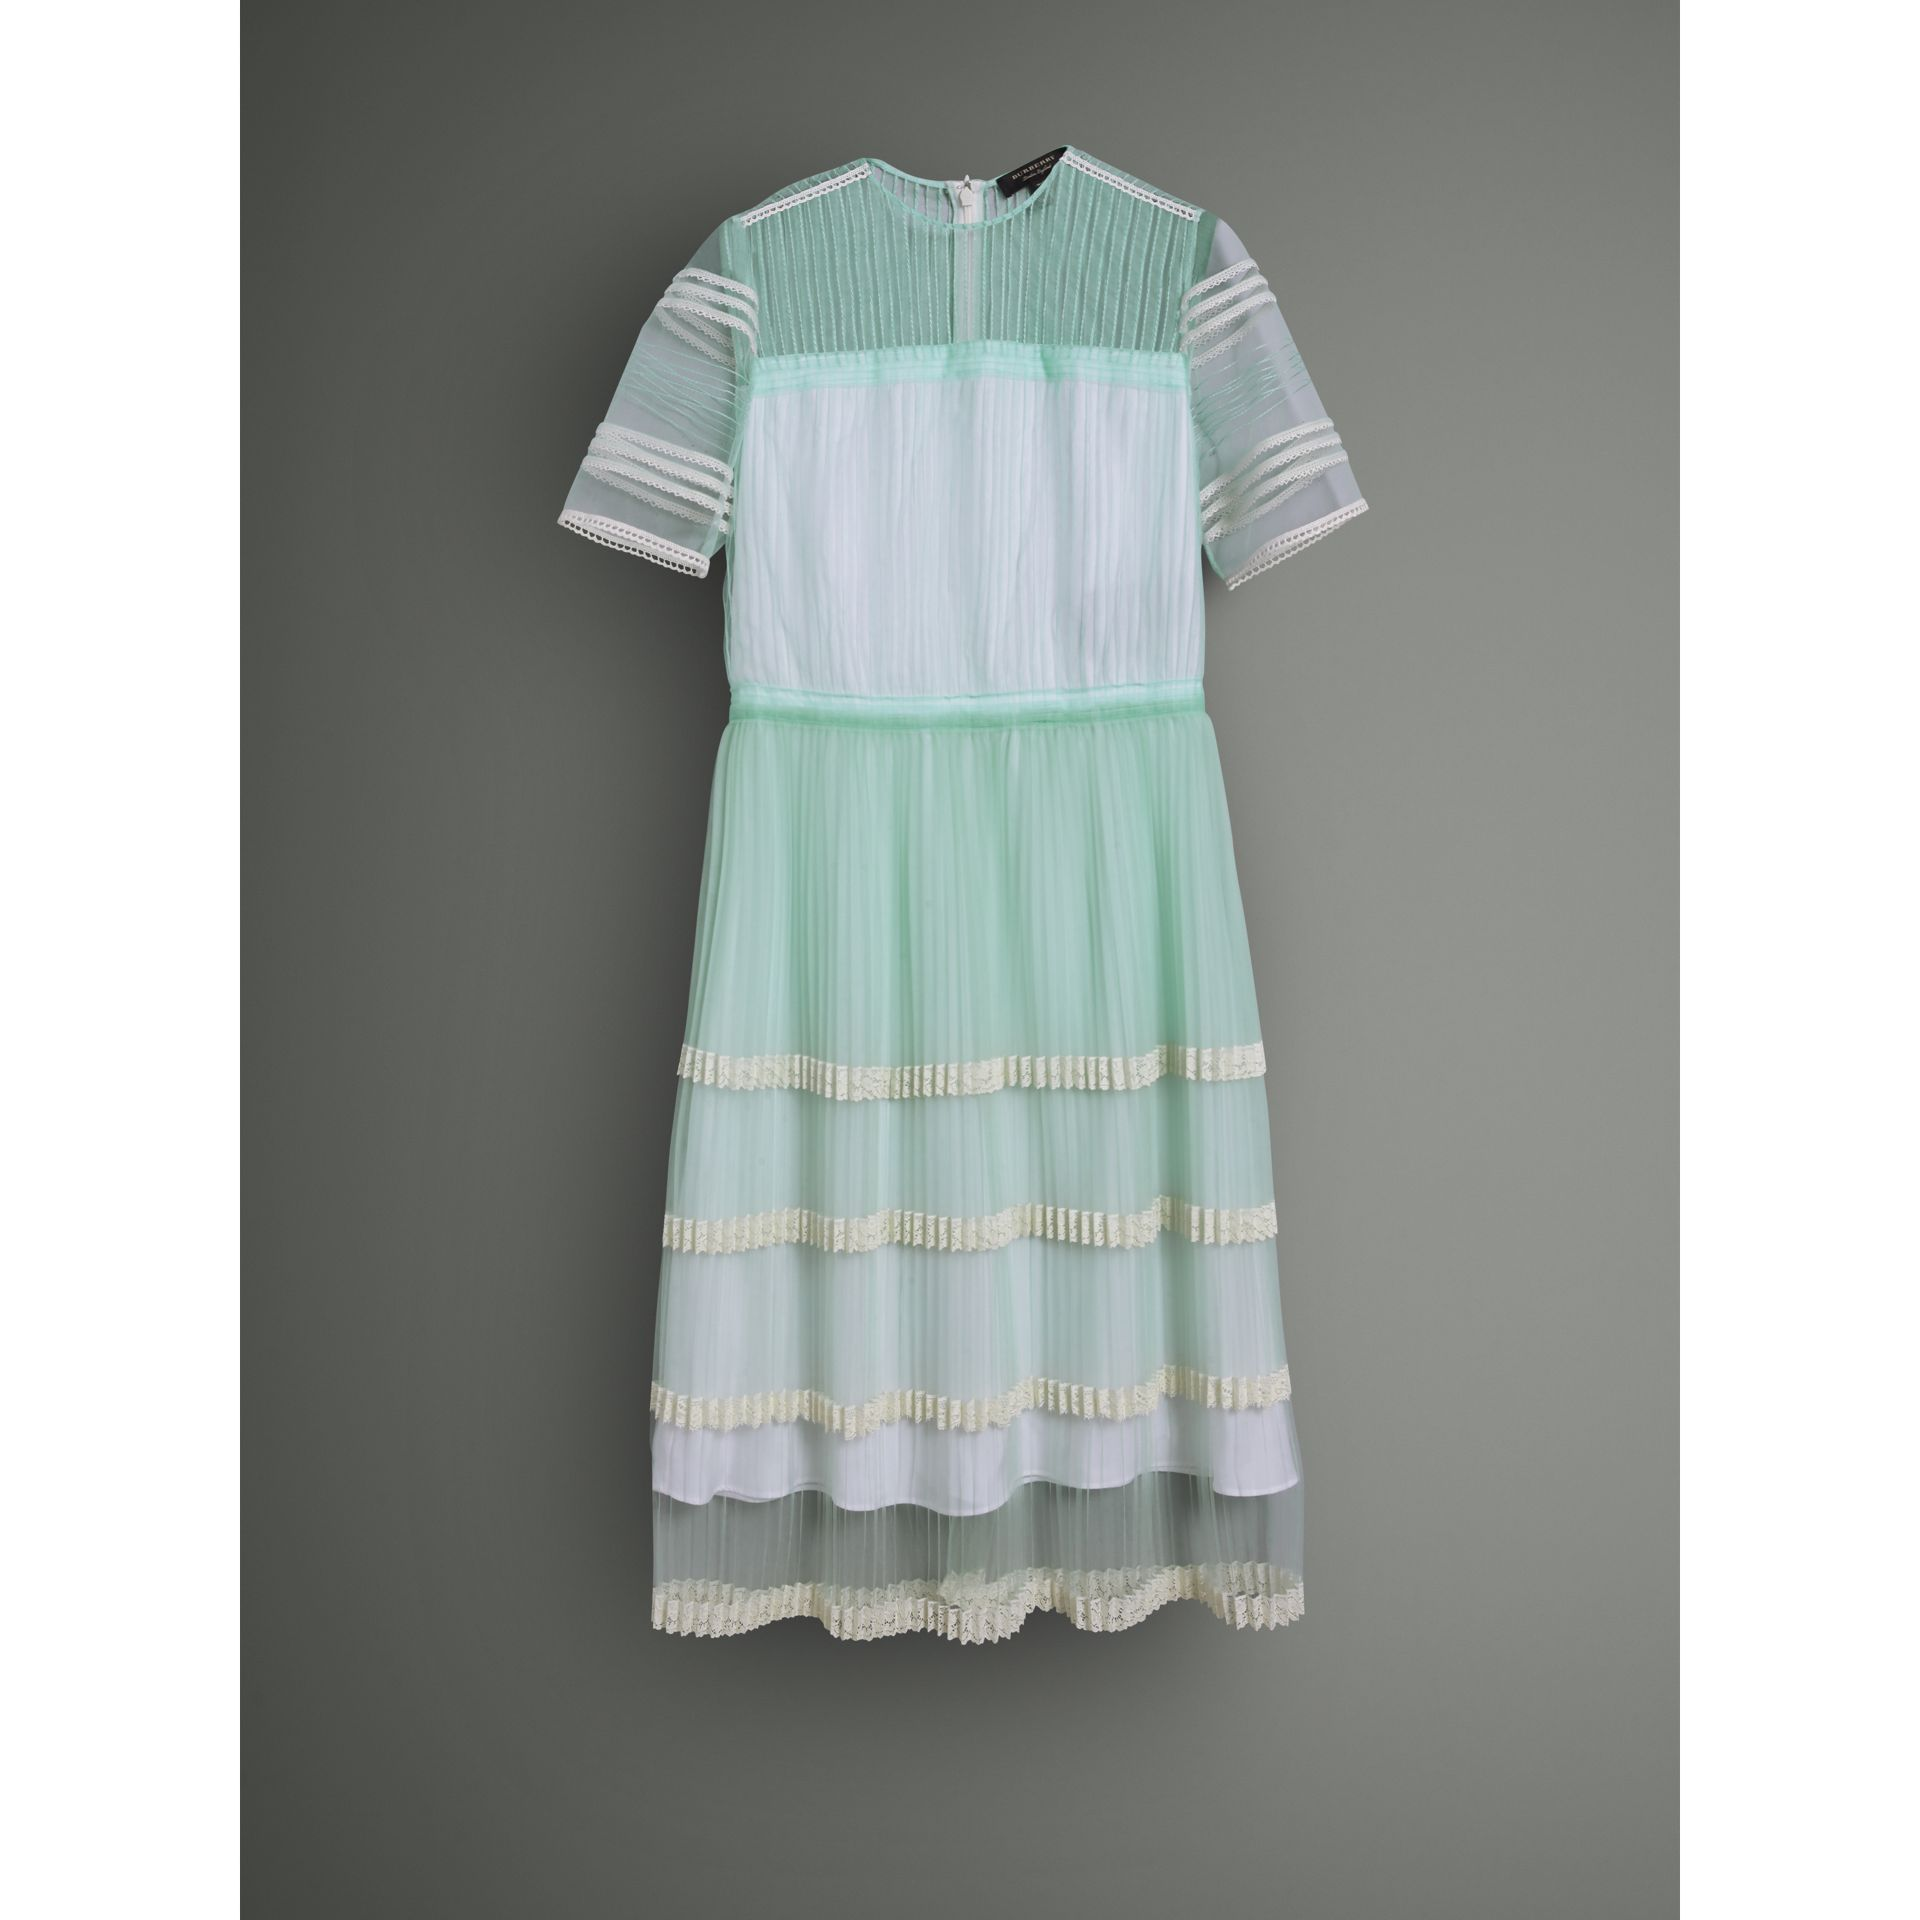 English Lace Trim Pleated Tulle Dress in Light Mint - Women | Burberry Singapore - gallery image 3